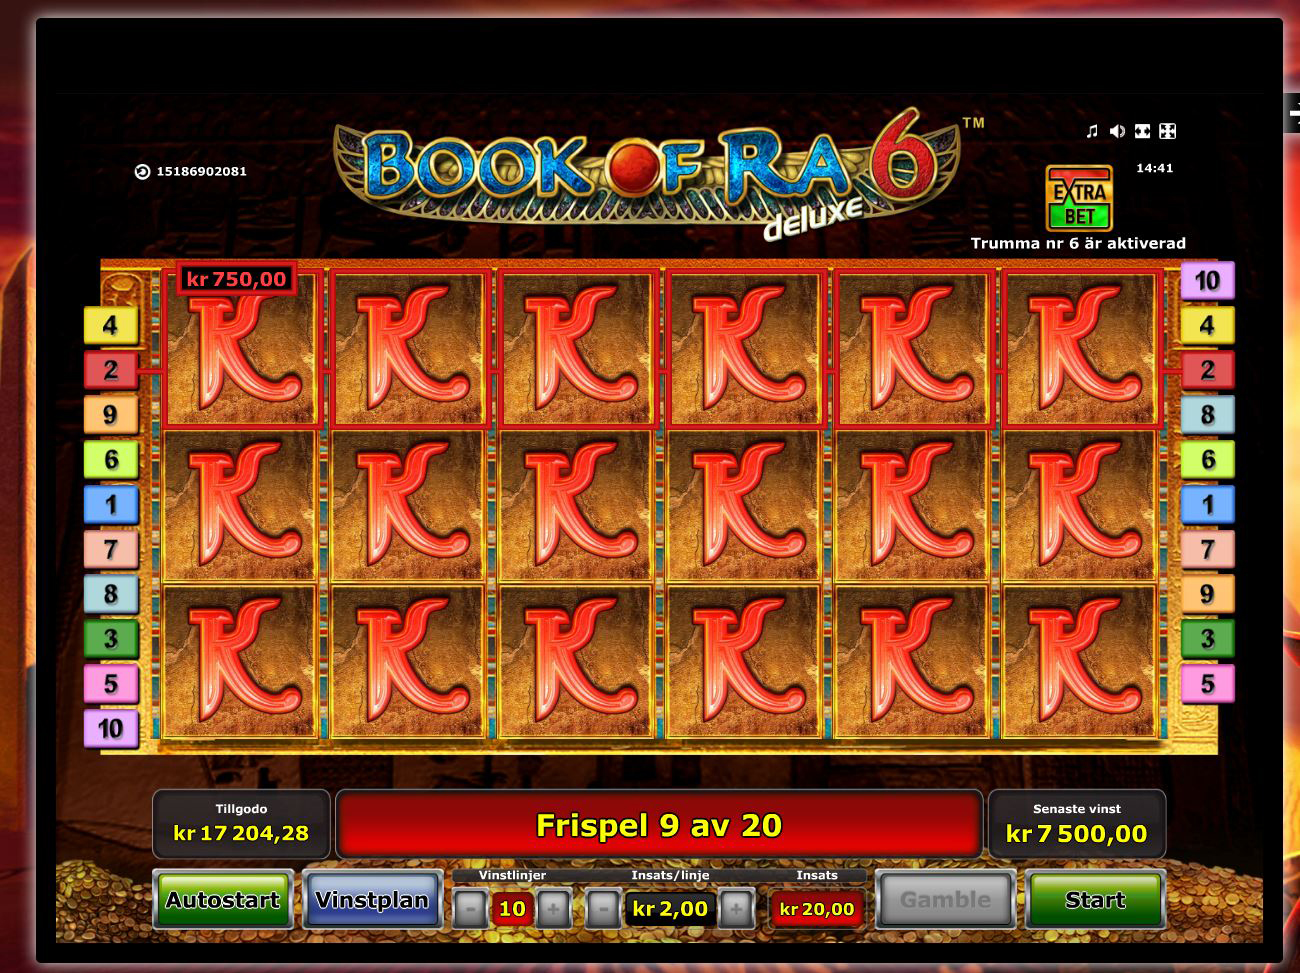 online casino software book of raa